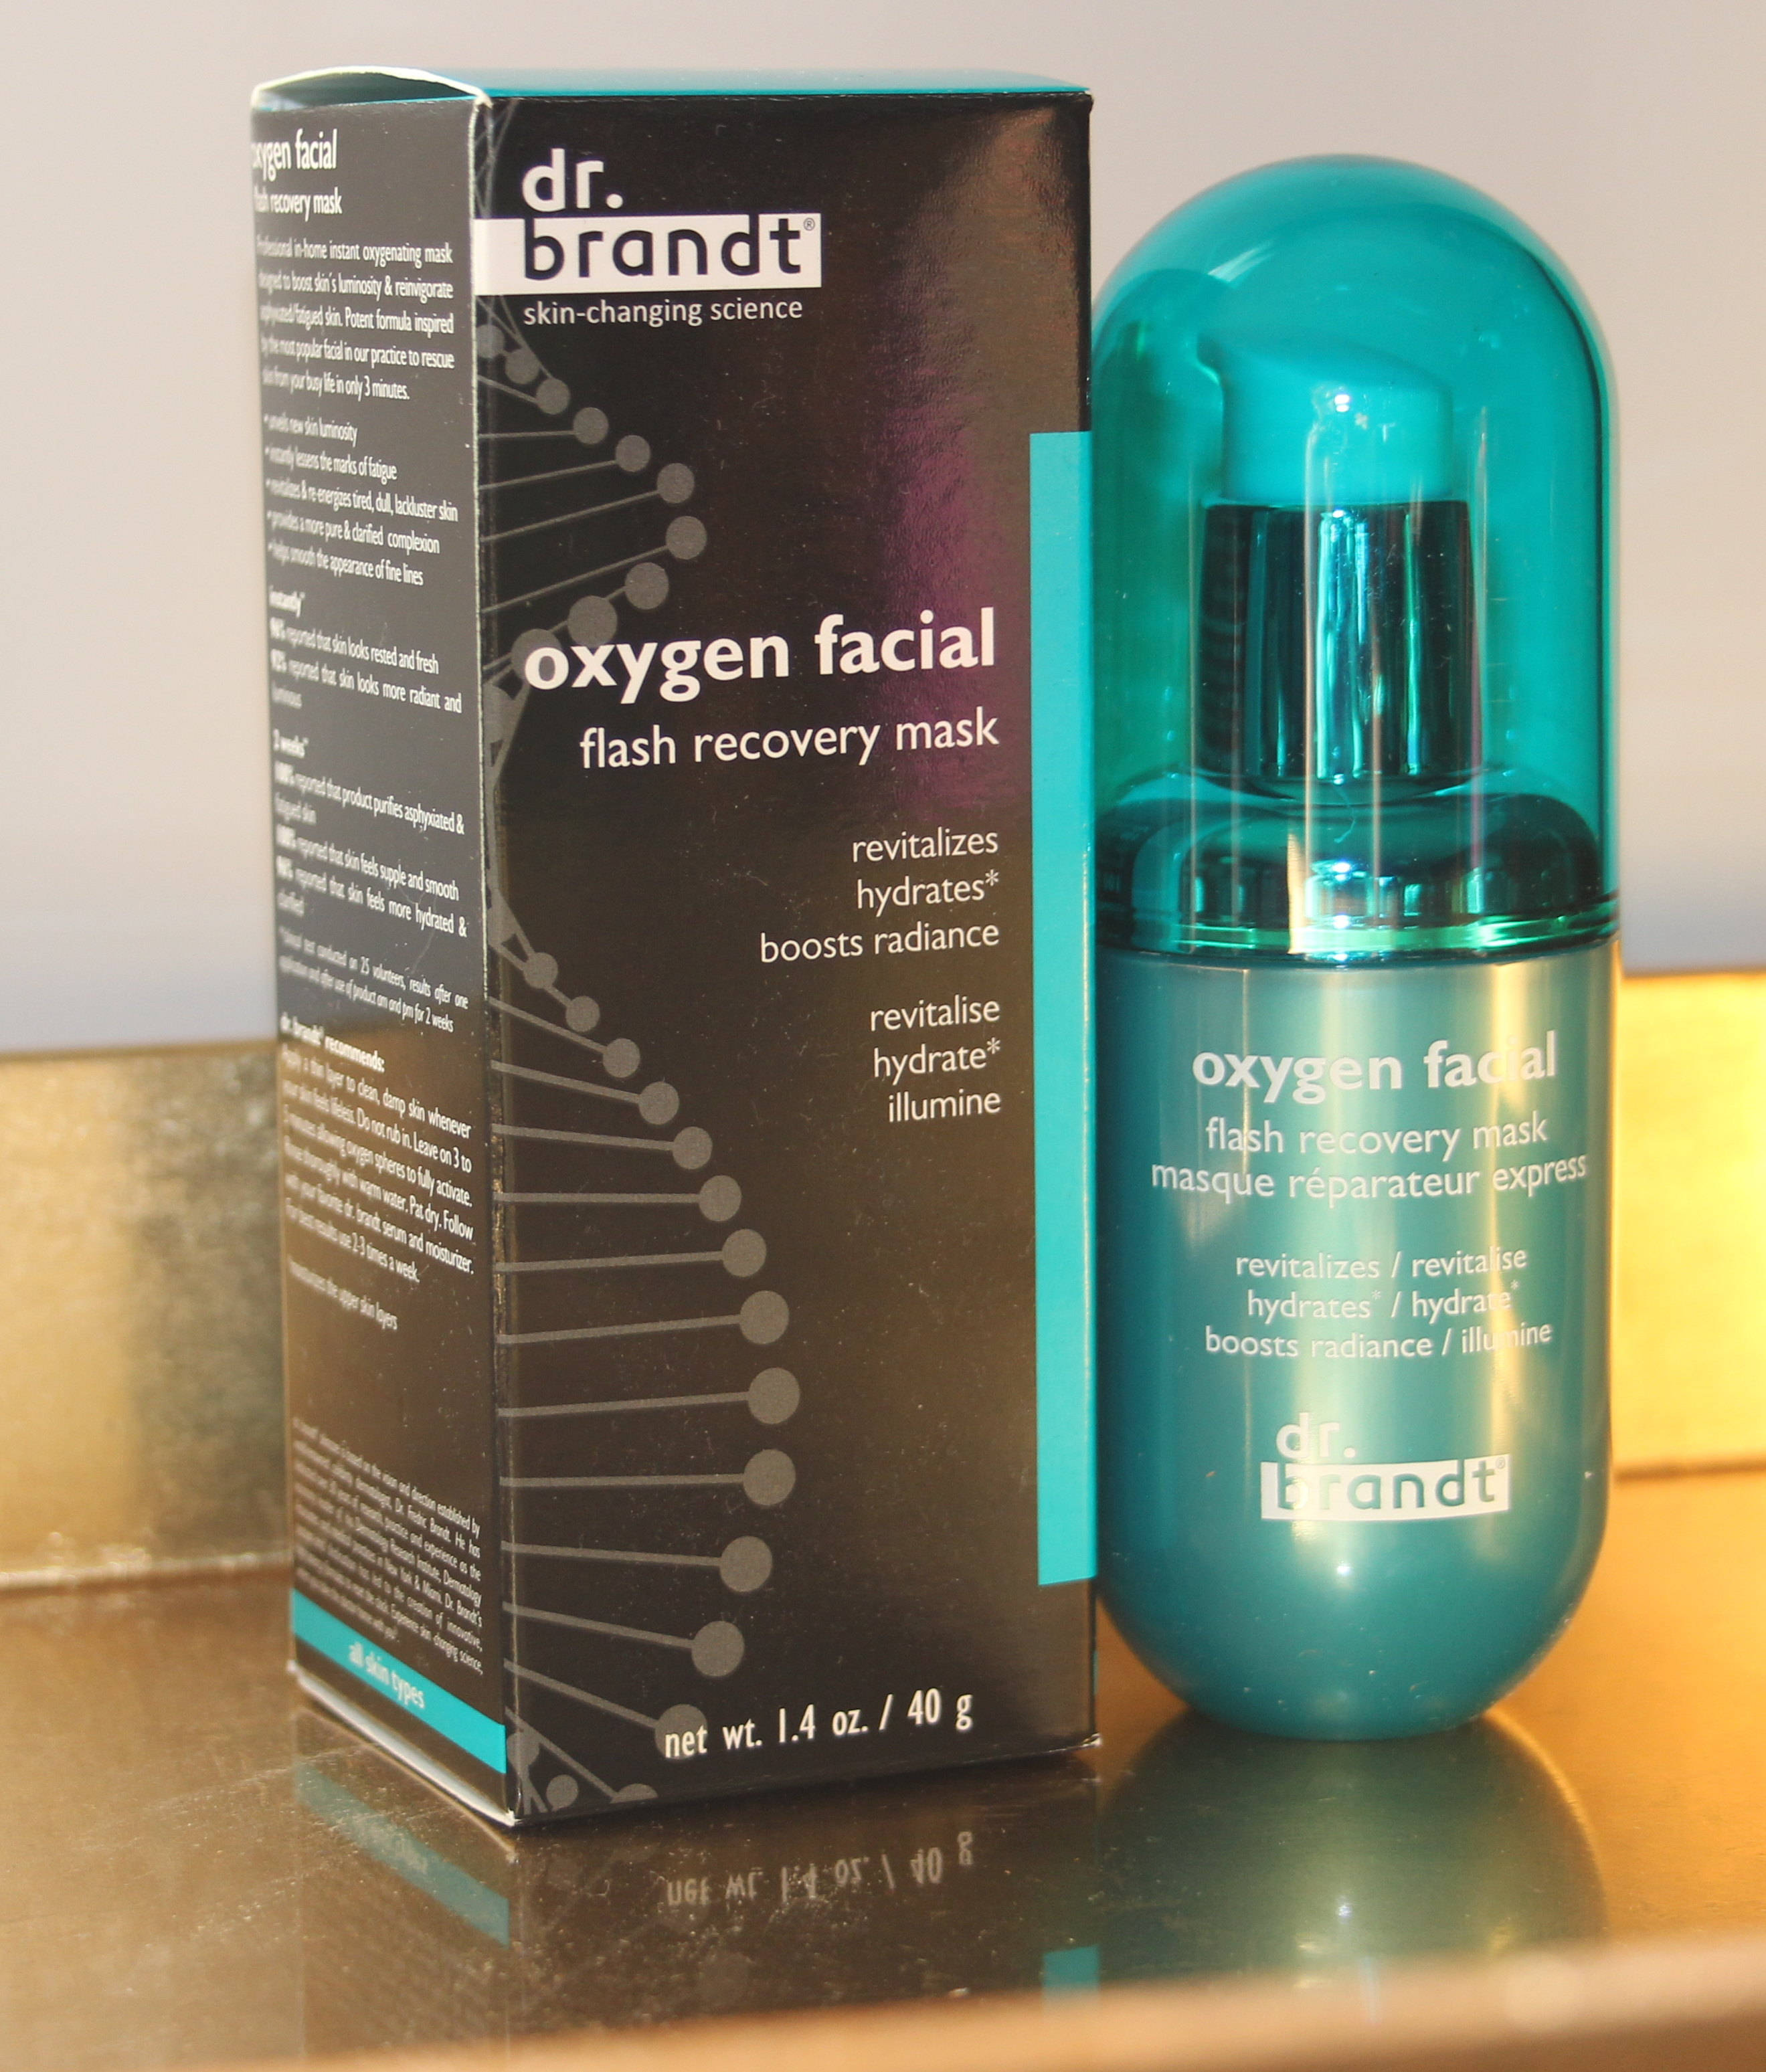 Review of dr. brandt Oxygen Facial